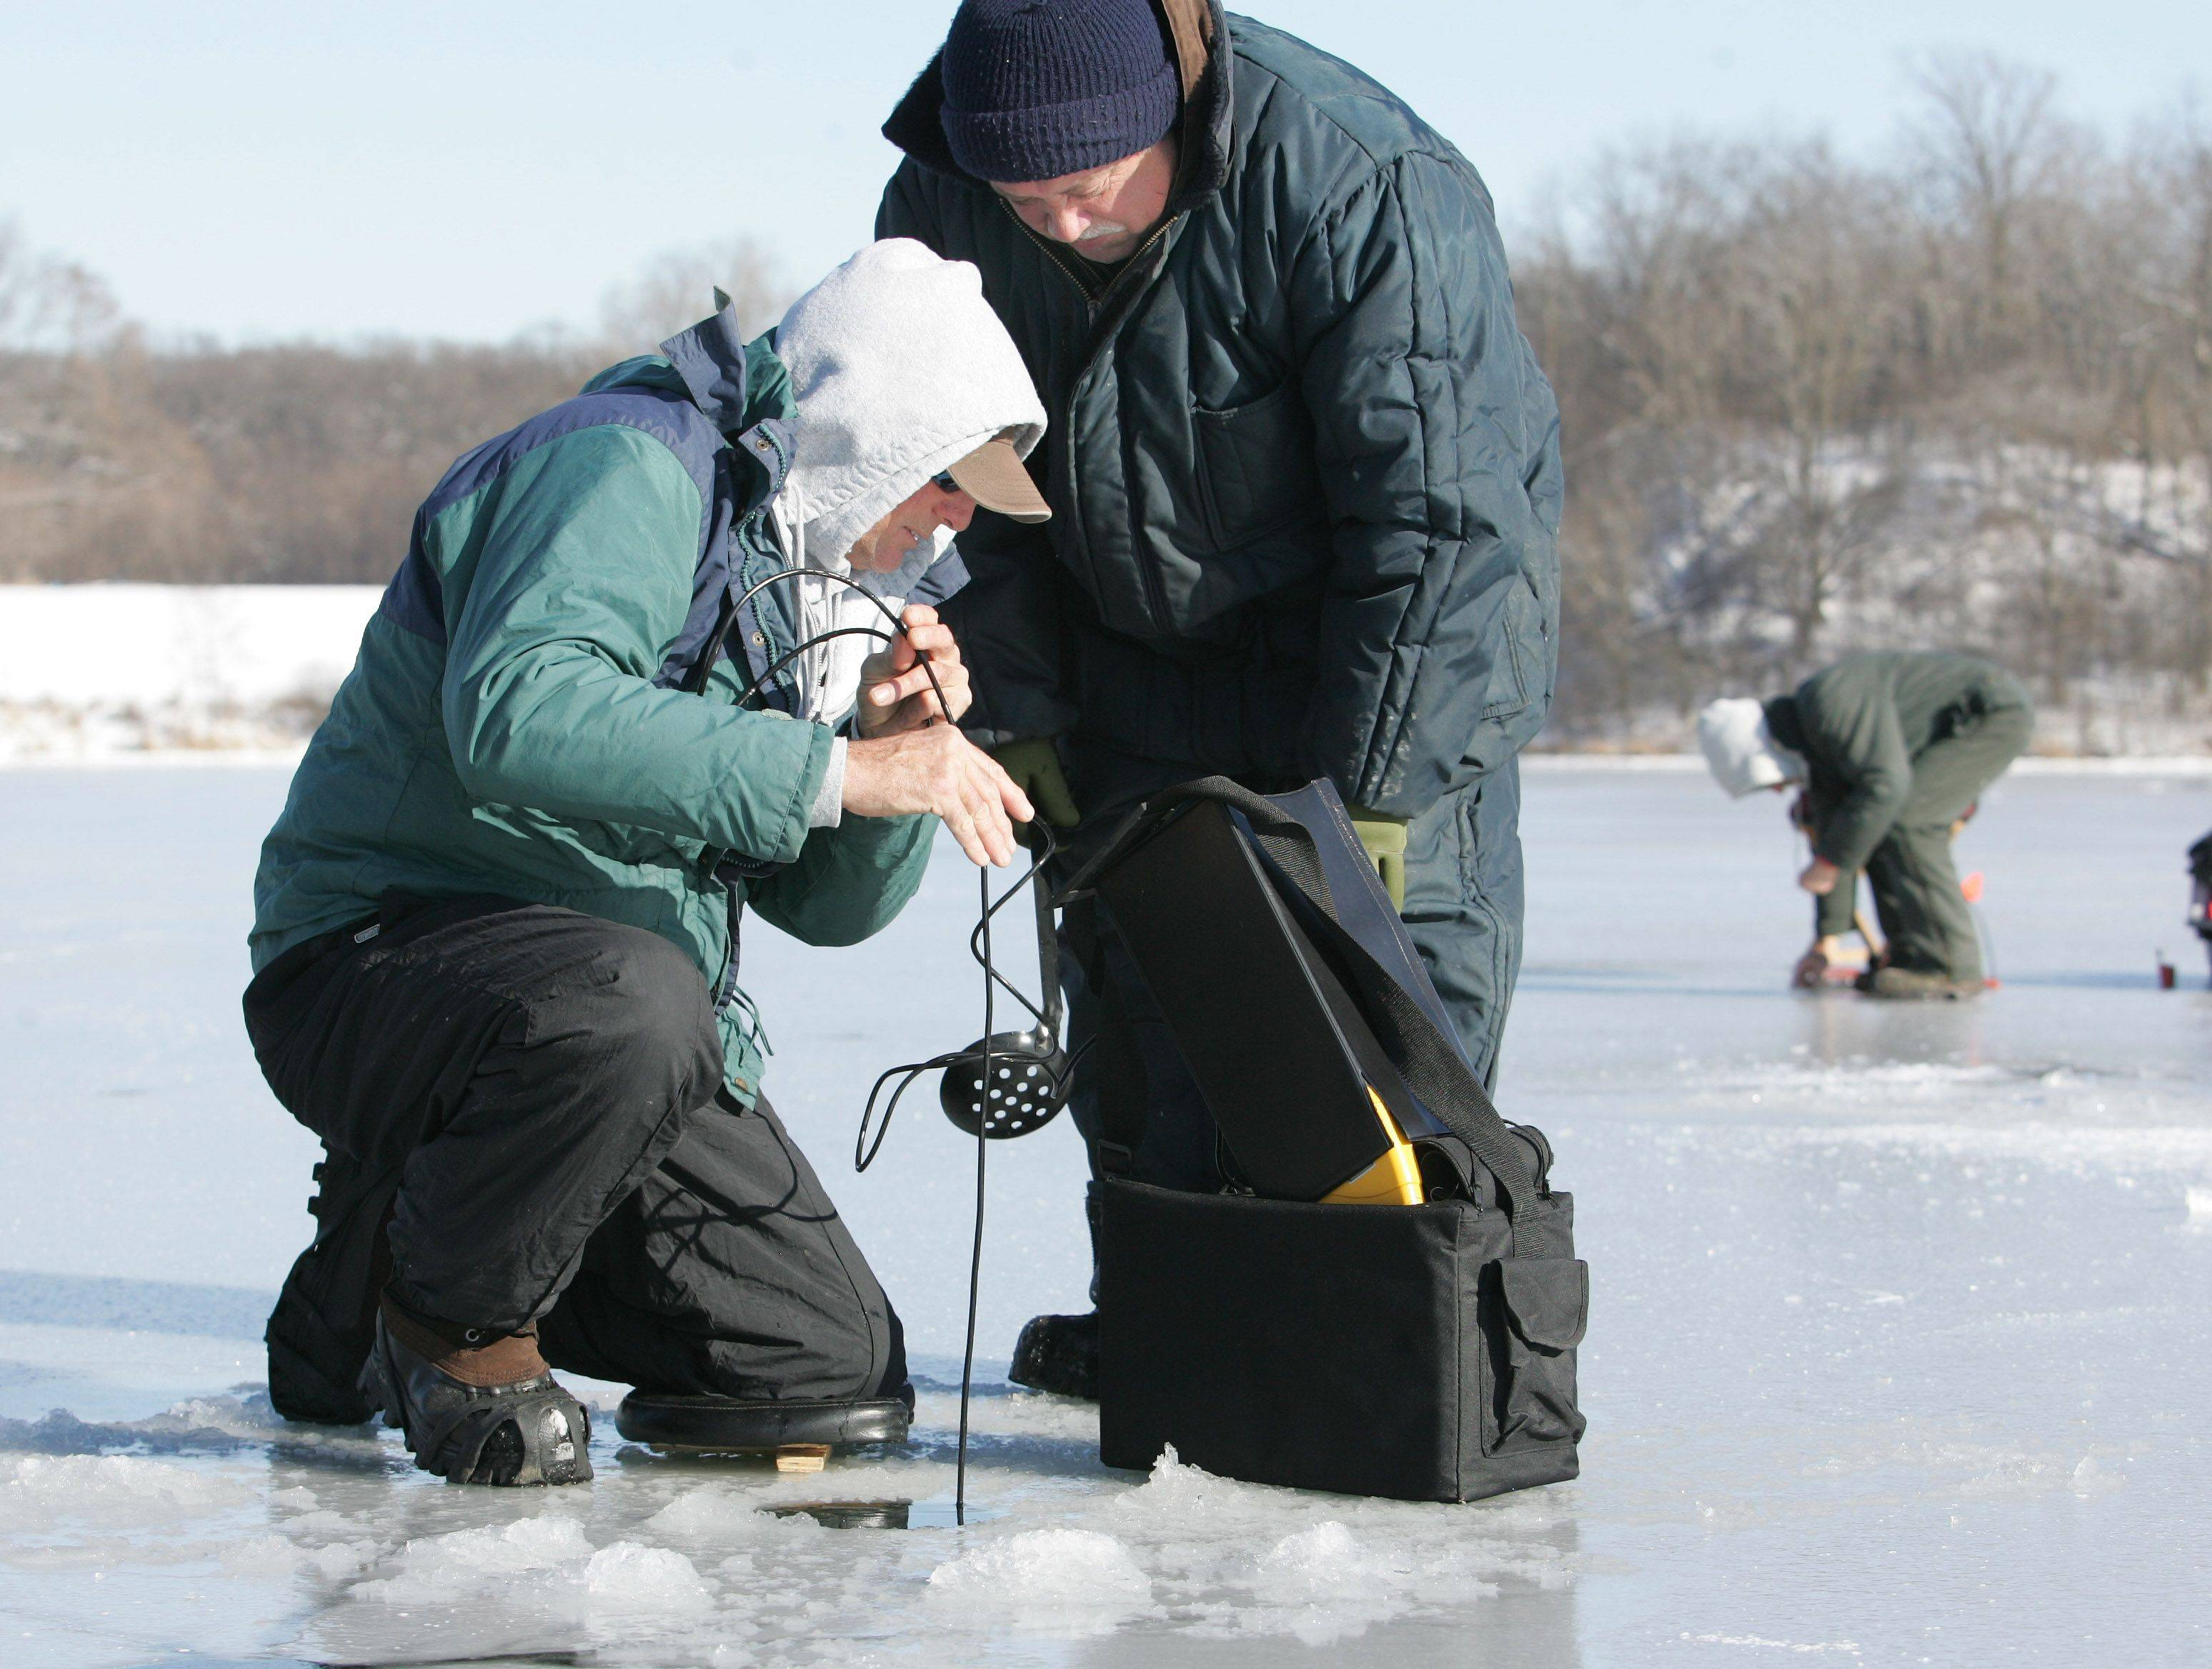 Mike Martin of Batavia, left, and Jack Lapice of Romeoville use an underwater camera to locat the edge of the weed bed for the best ice fishing on Silver Lake in Blackwell Forest Preserve in Warrenville on Wednesday. Ice fishing has begun this week after the area's recent cold temperatures. The ice is currently about 4 inches thick.